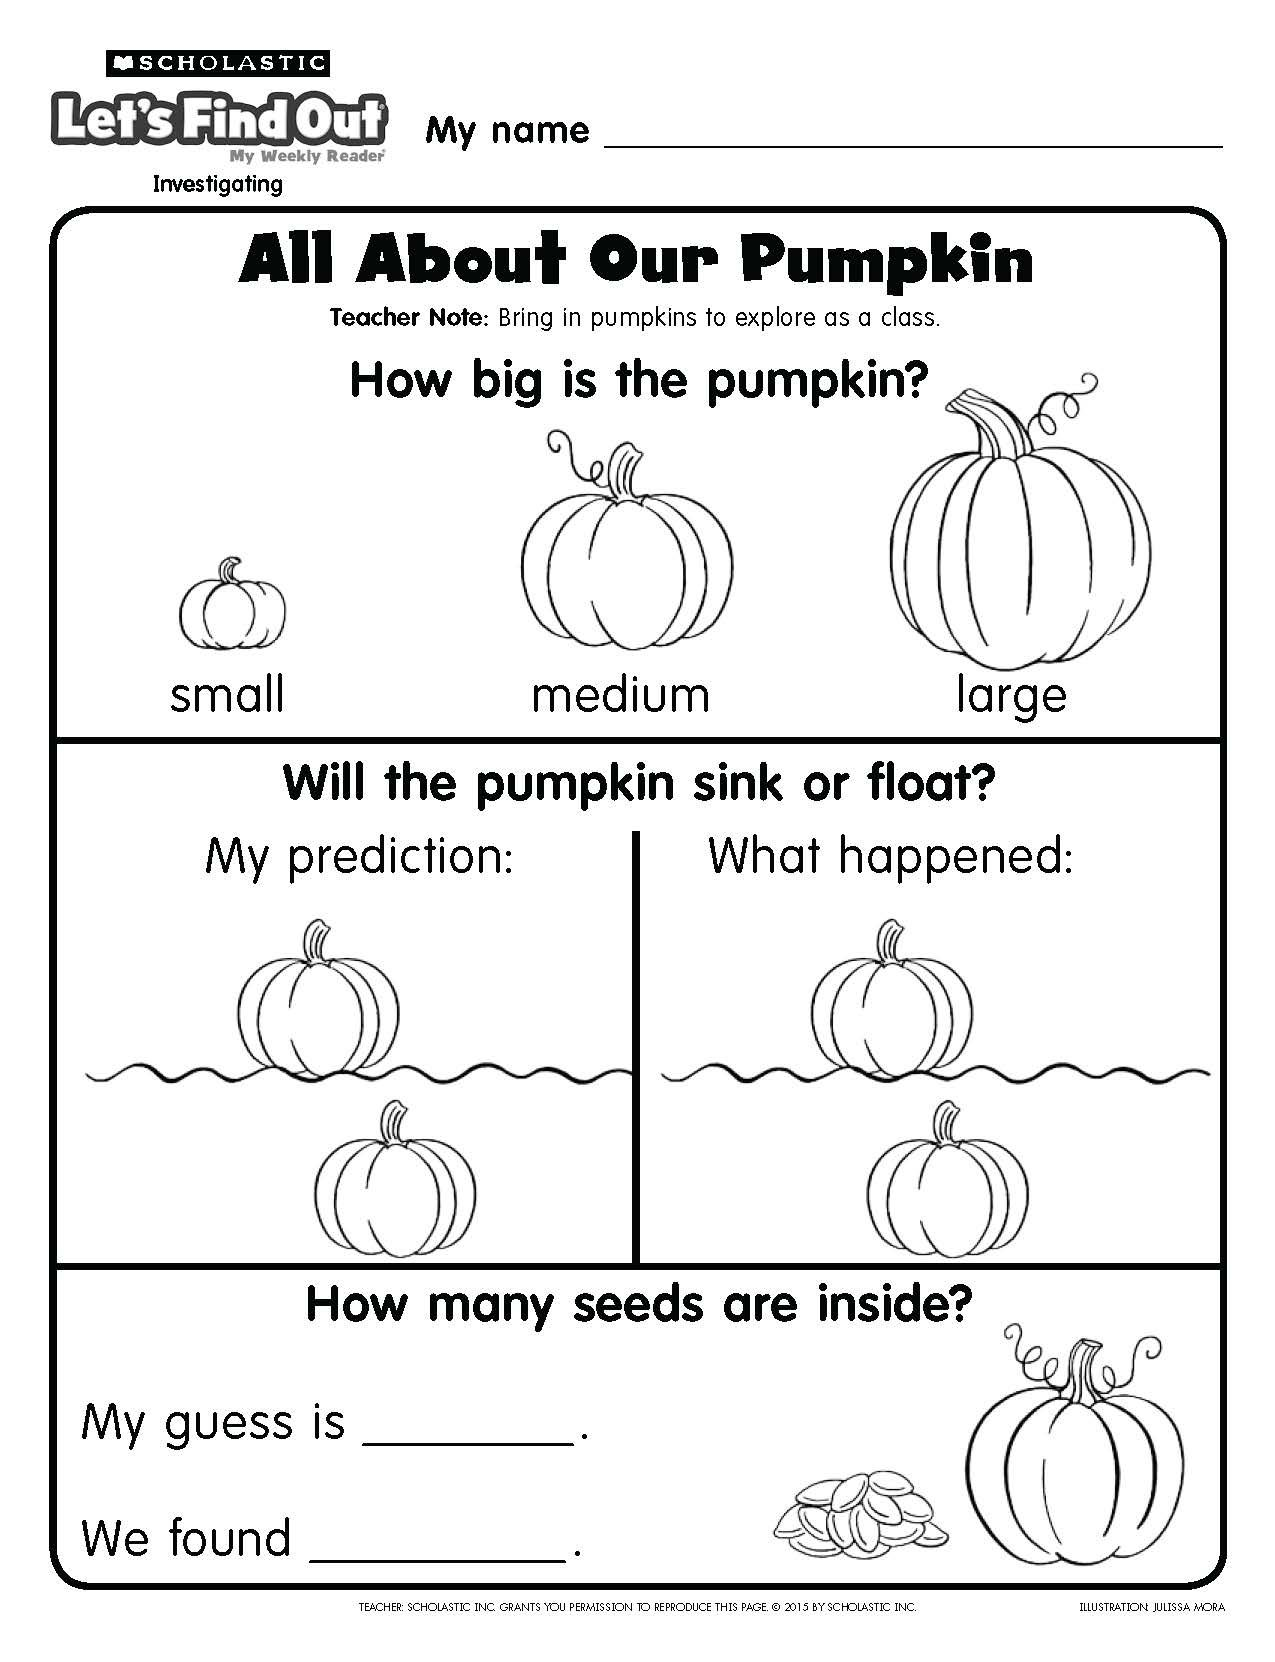 Record Pumpkin Observations With This Printable Page From Let S Find Out Kindergarten Worksheets Preschool Worksheets Preschool Math Worksheets